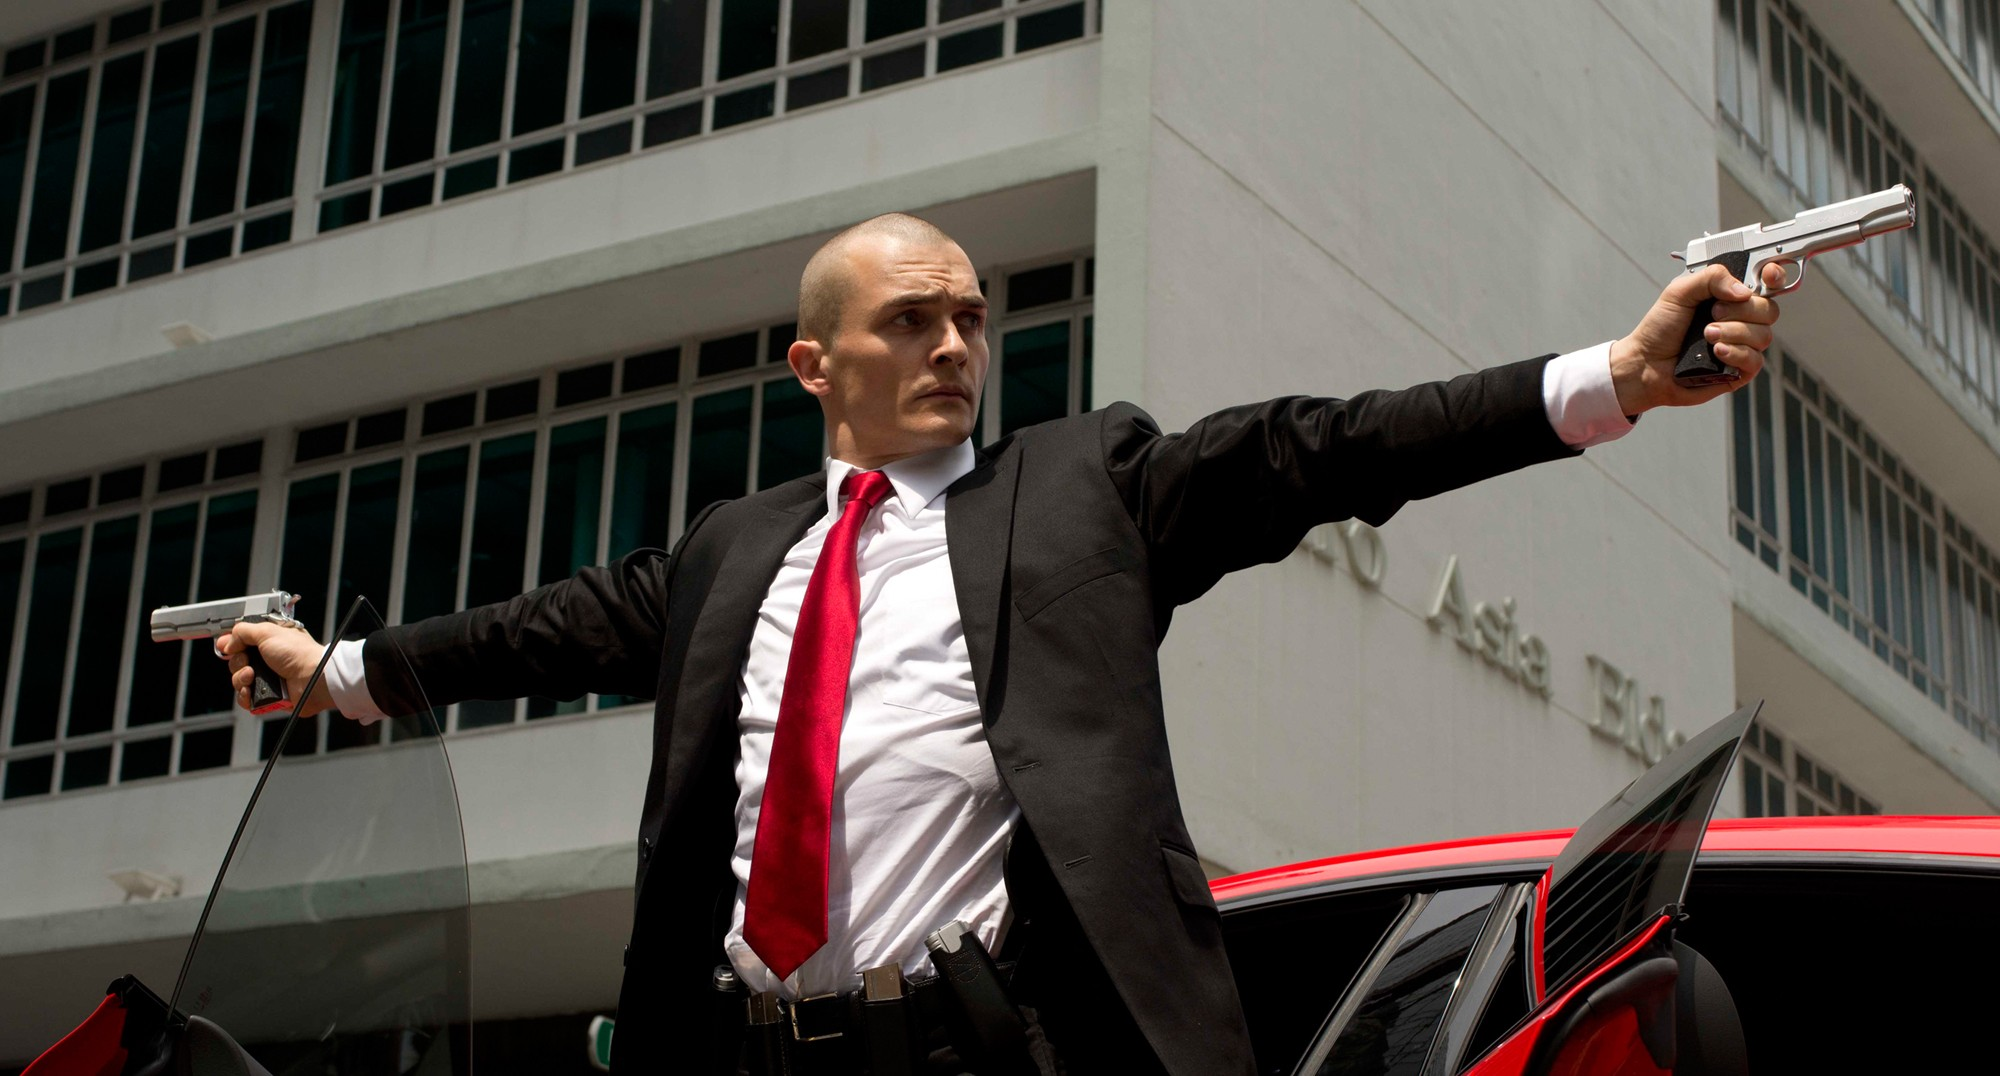 """Hitman: Agent 47"" was released on August 21, and has turned in $15.3 million at the box office thus far. (20th Century Fox)"